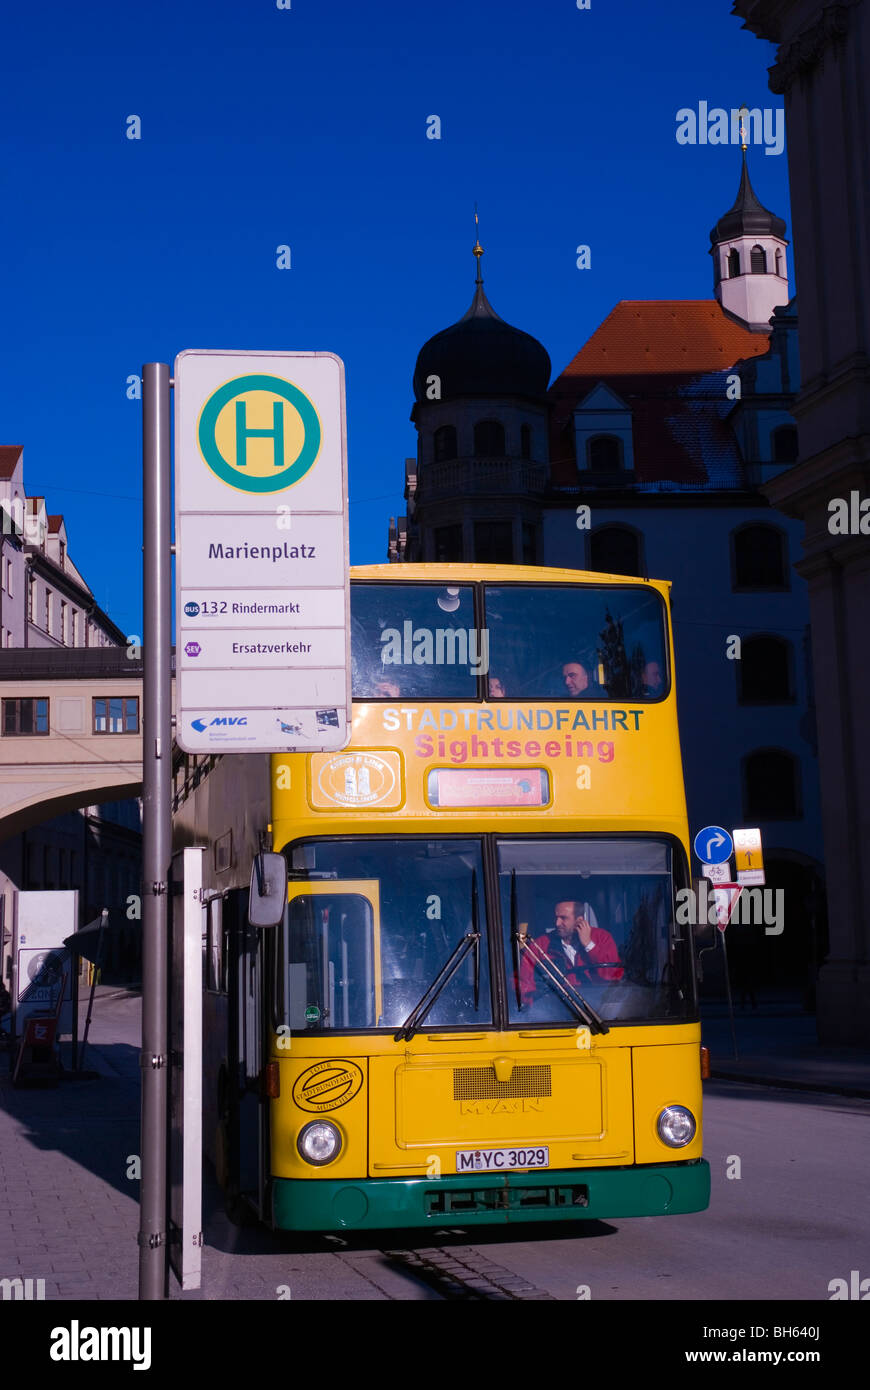 Sightseeing bus Marienplatz square Munich Bavaria Germany Europe - Stock Image